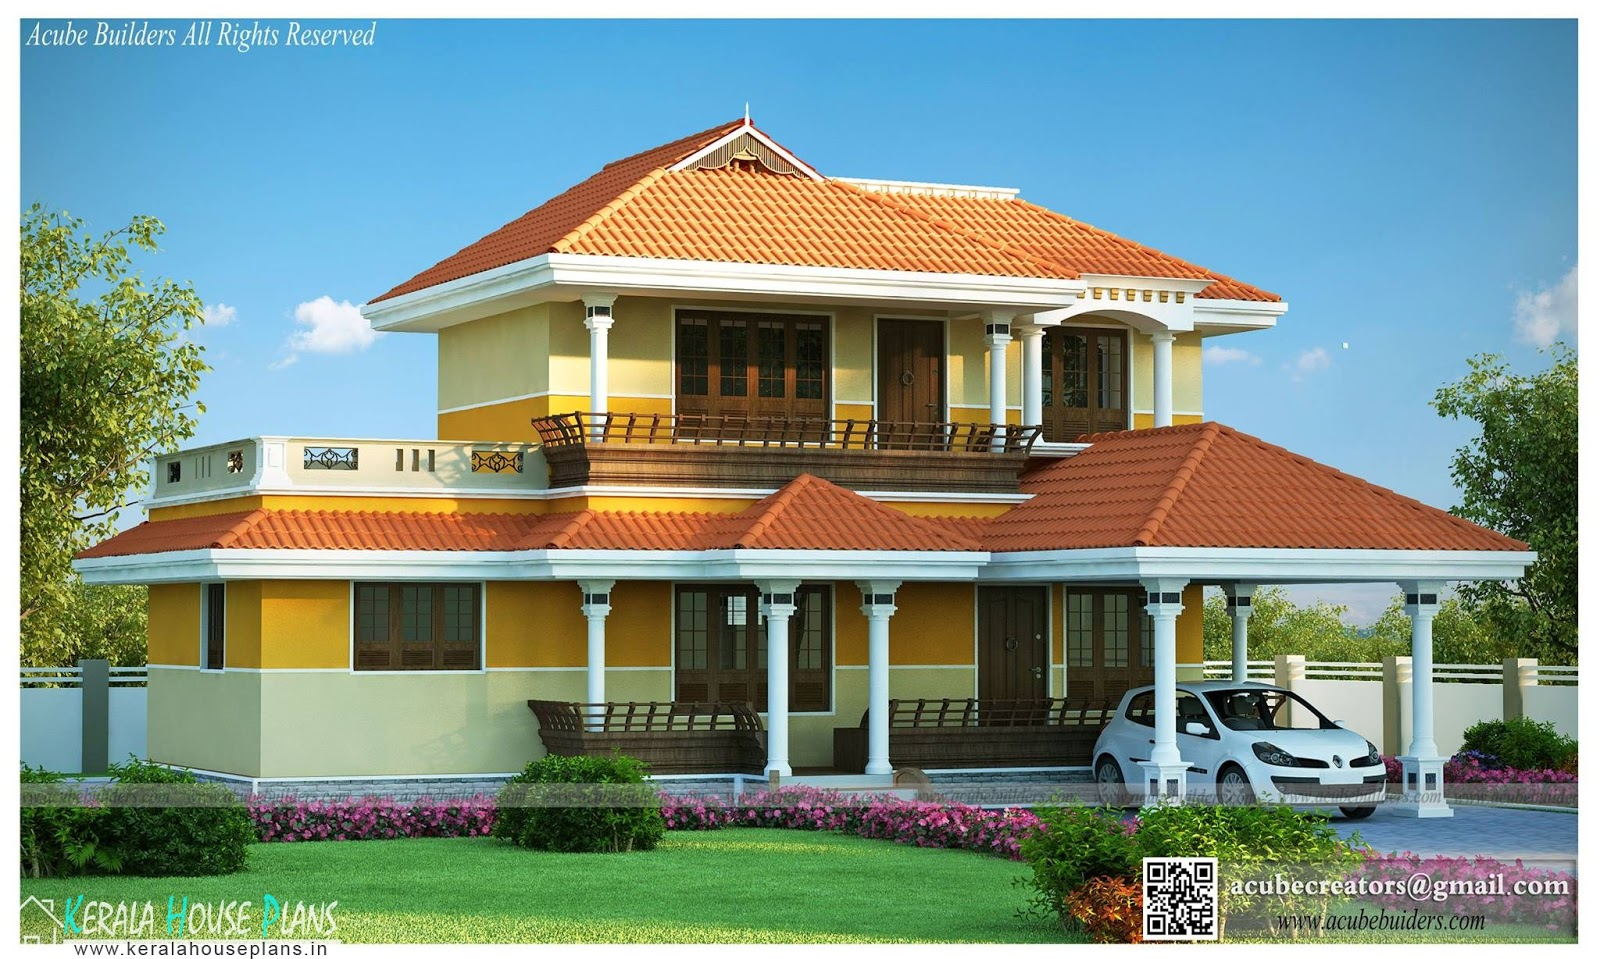 Traditional house plans in kerala kerala house plans for Classic home plans